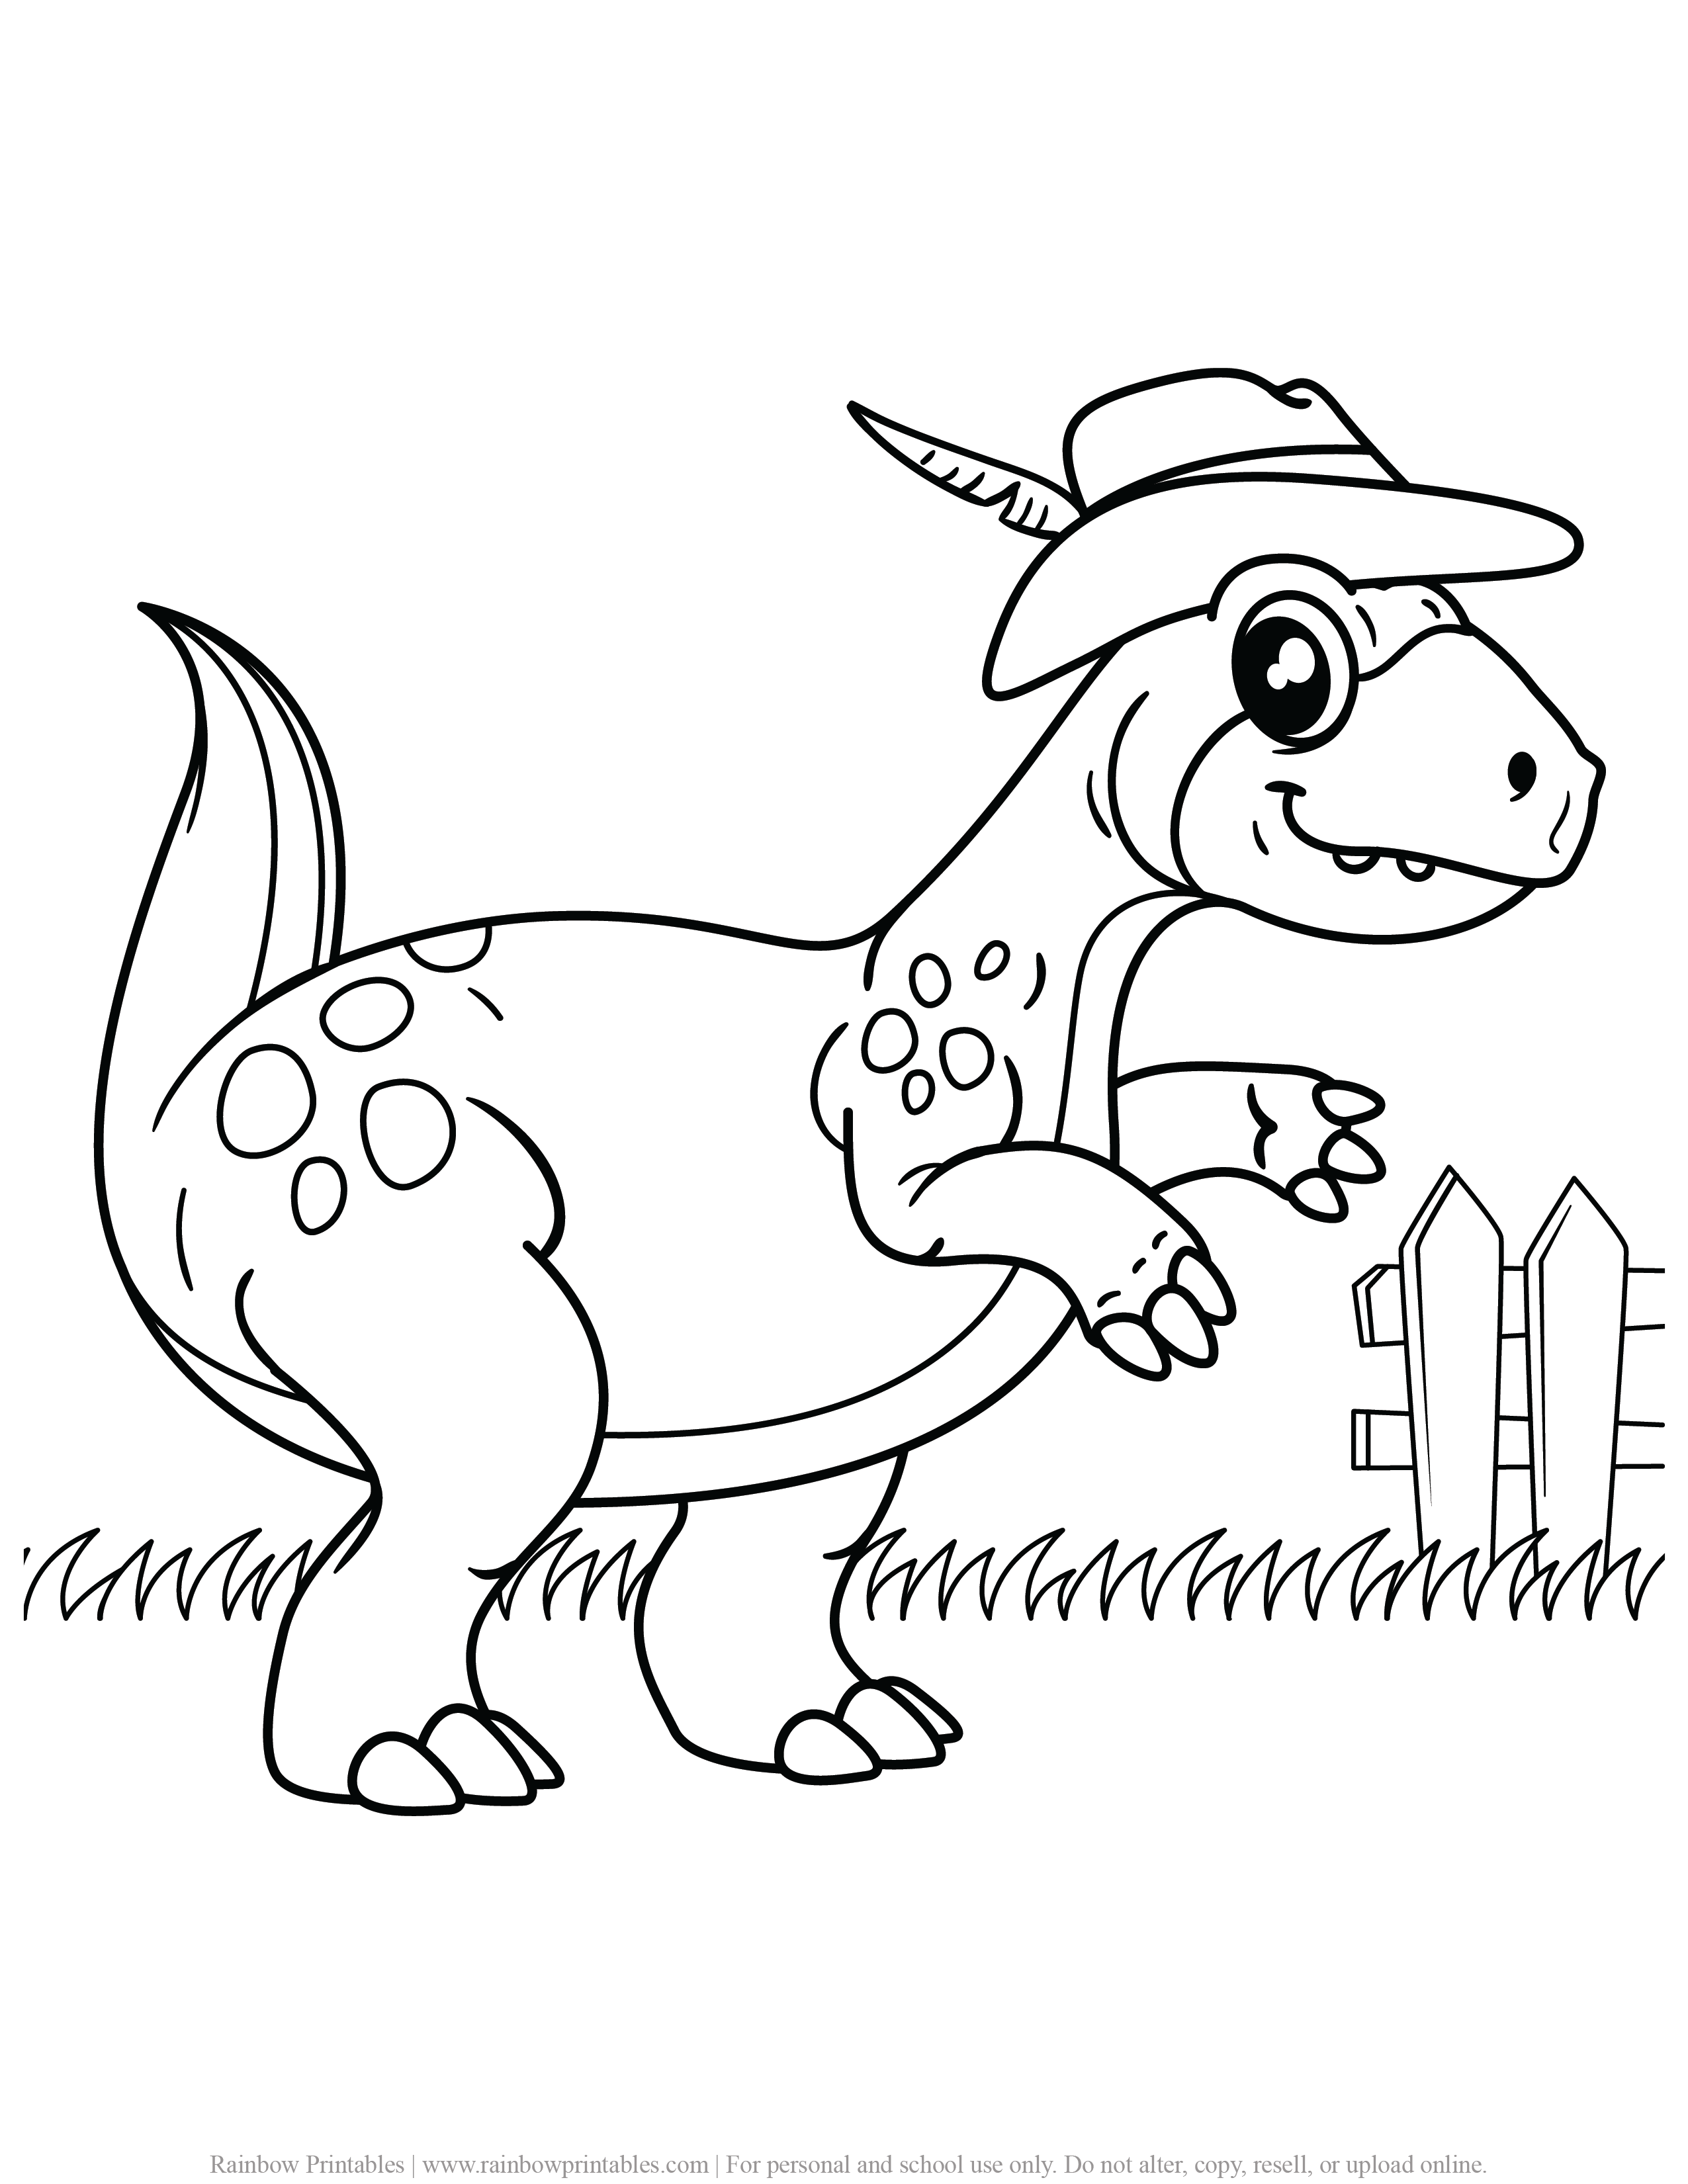 FREE DINOSAUR COLORING PAGES ACTIVITY FOR KIDS AND BOYS DINO DRAGON PRINTABLE-09